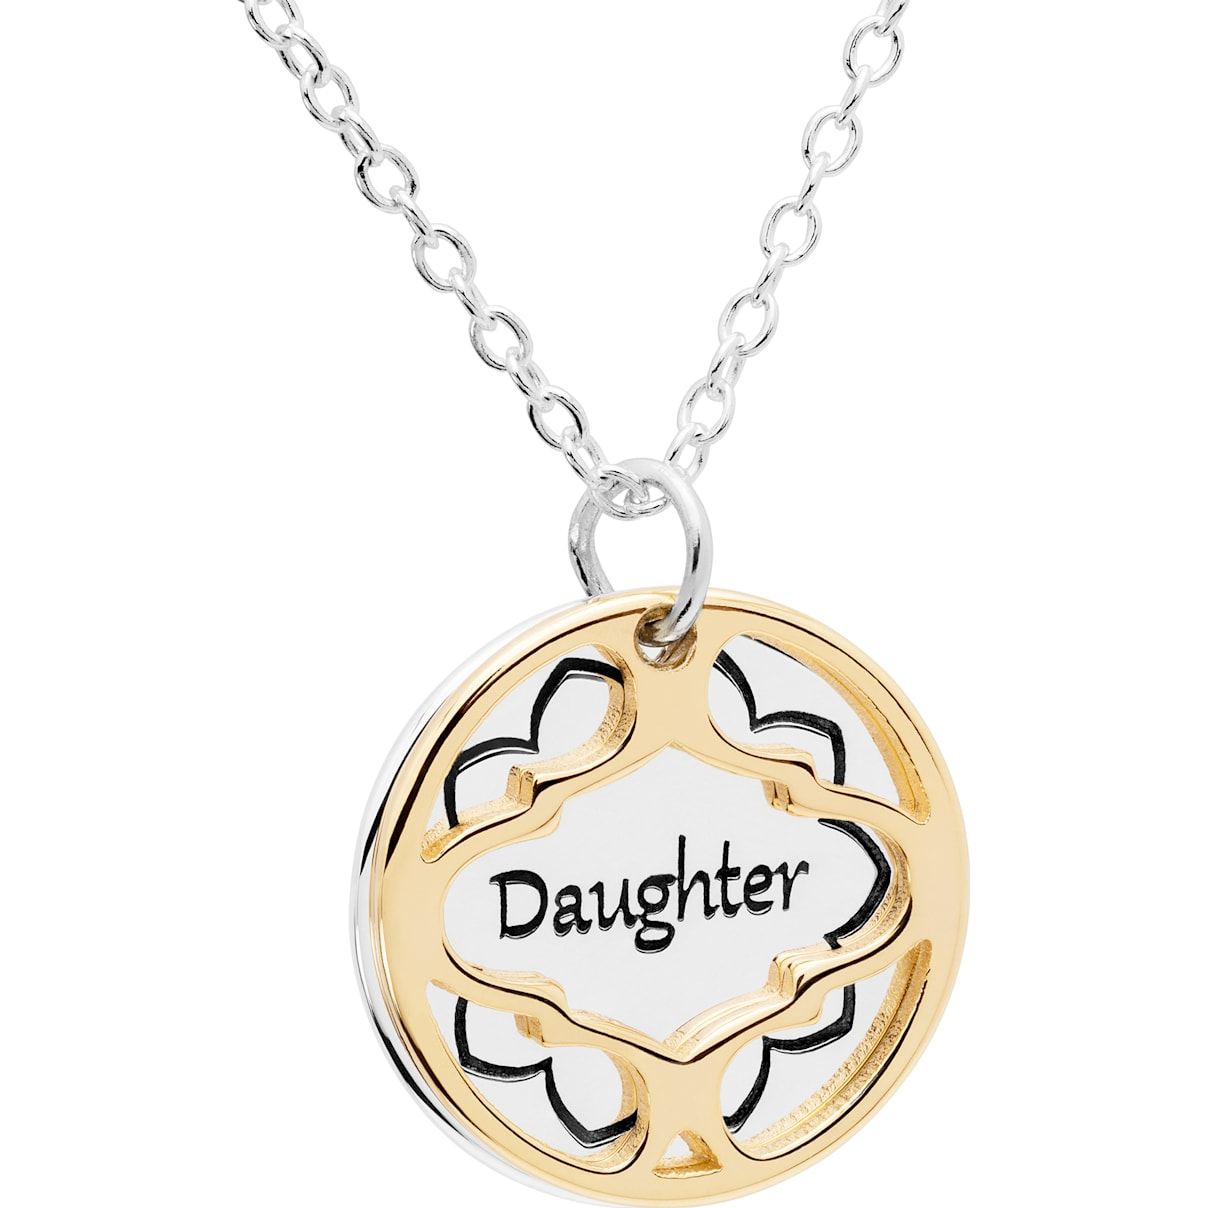 Swarovski Treasure Necklace - Daughter